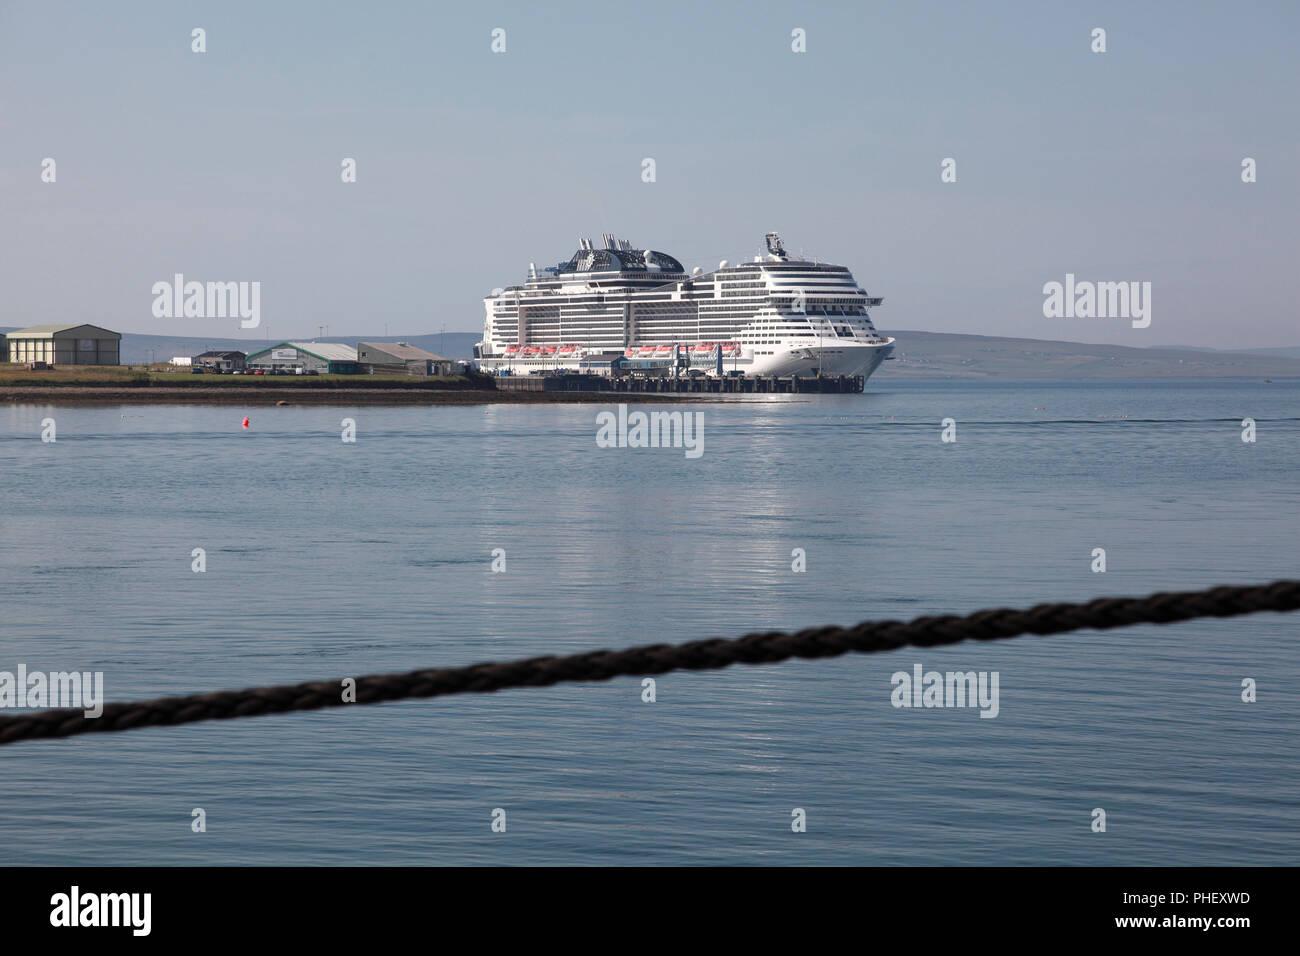 The cruise liner MSC Meraviglia with up to 5,000 passengers moored in a deep water berth on the outskirts of Kirkwall, Orkney - Stock Image